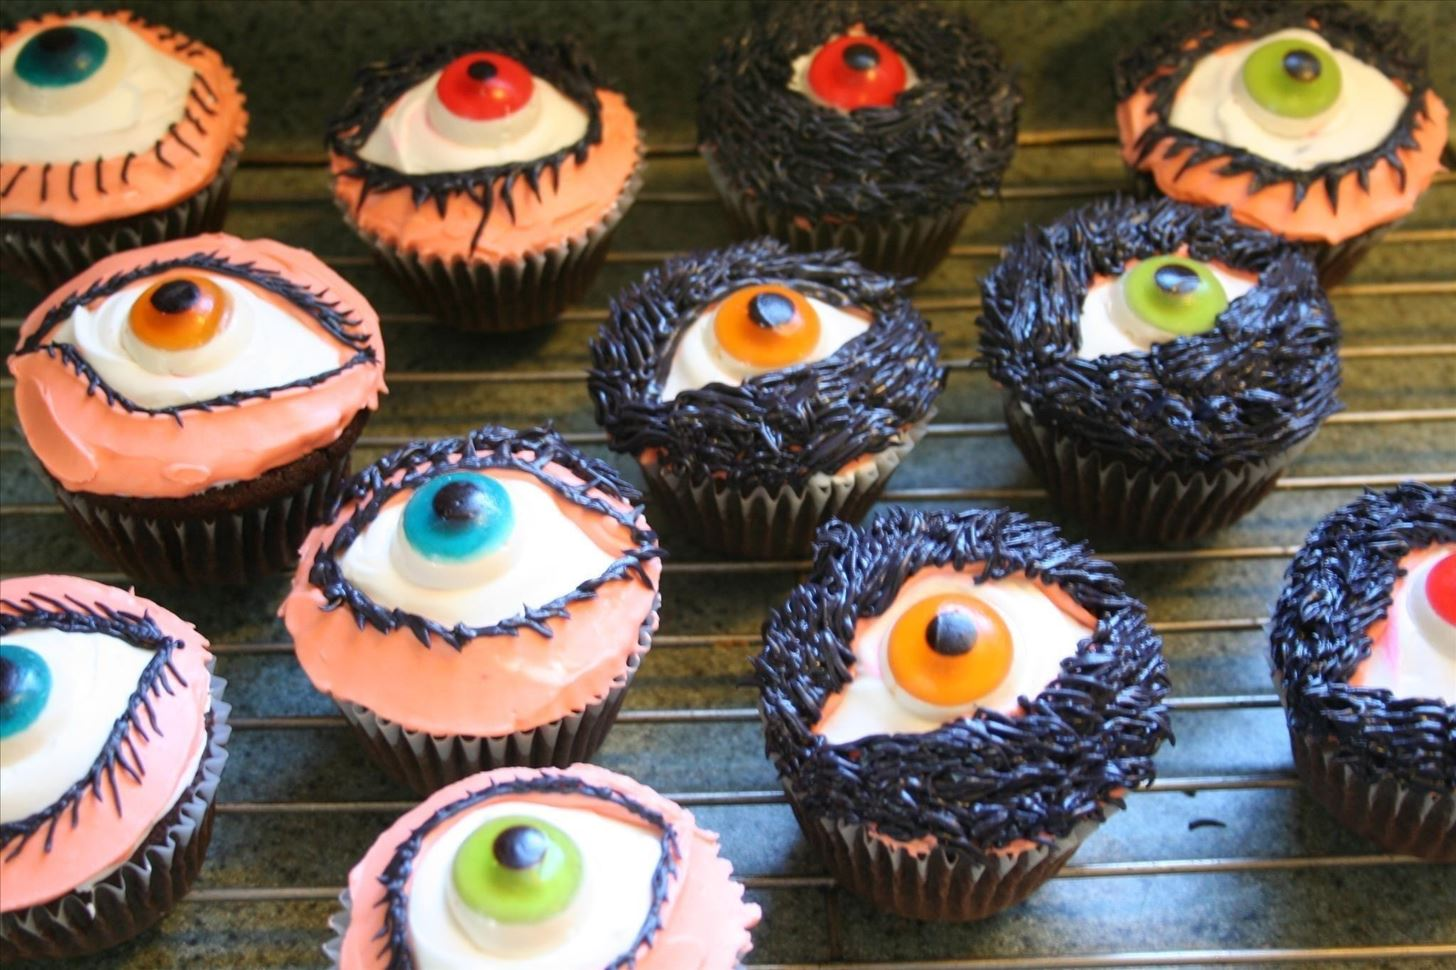 6unnerving eyeball cupcakes - Halloween Decorations Cupcakes